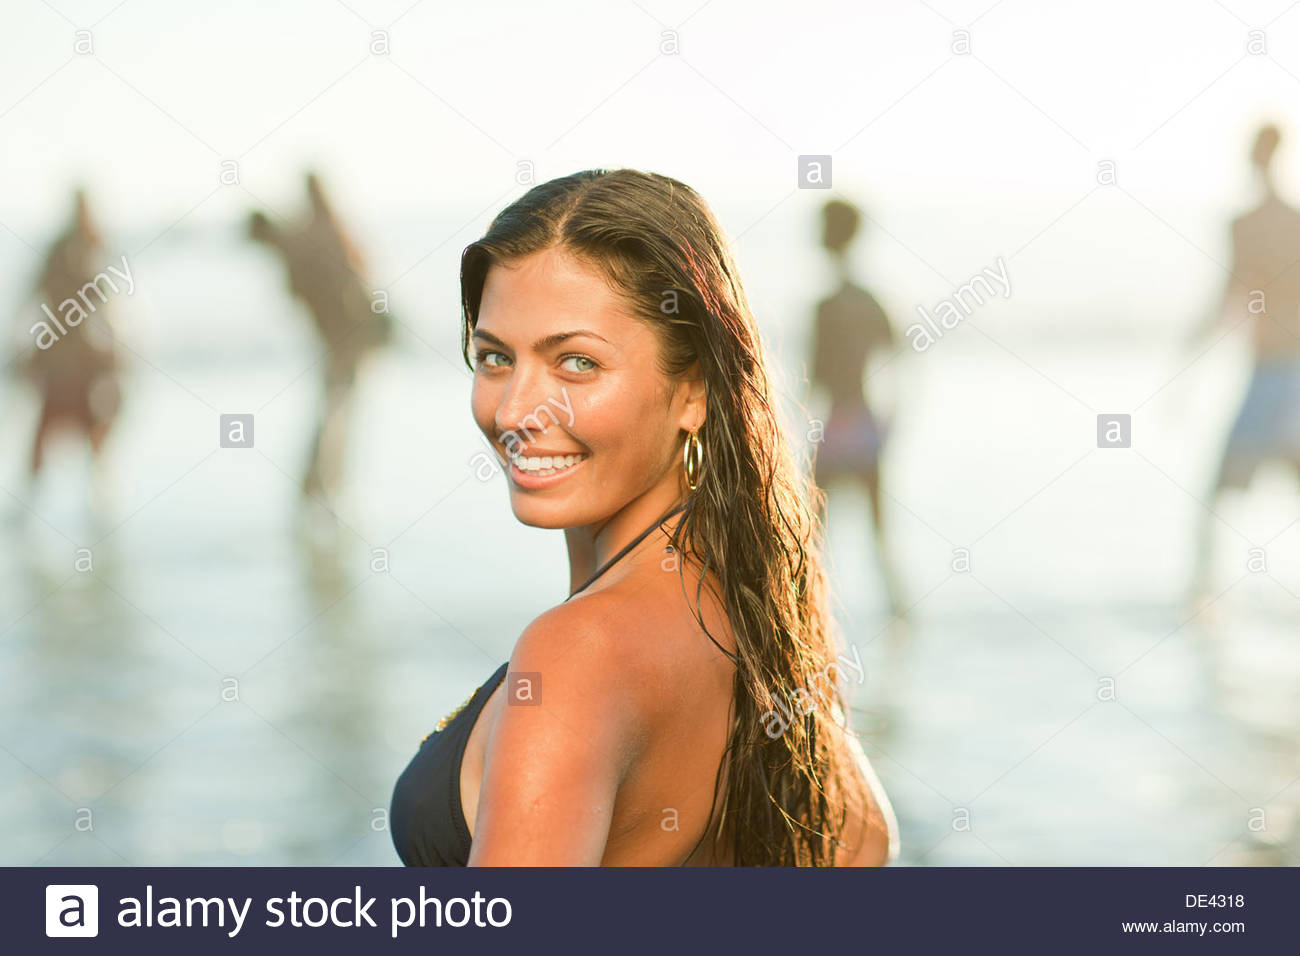 Woman wearing bikini on beach - Stock Image